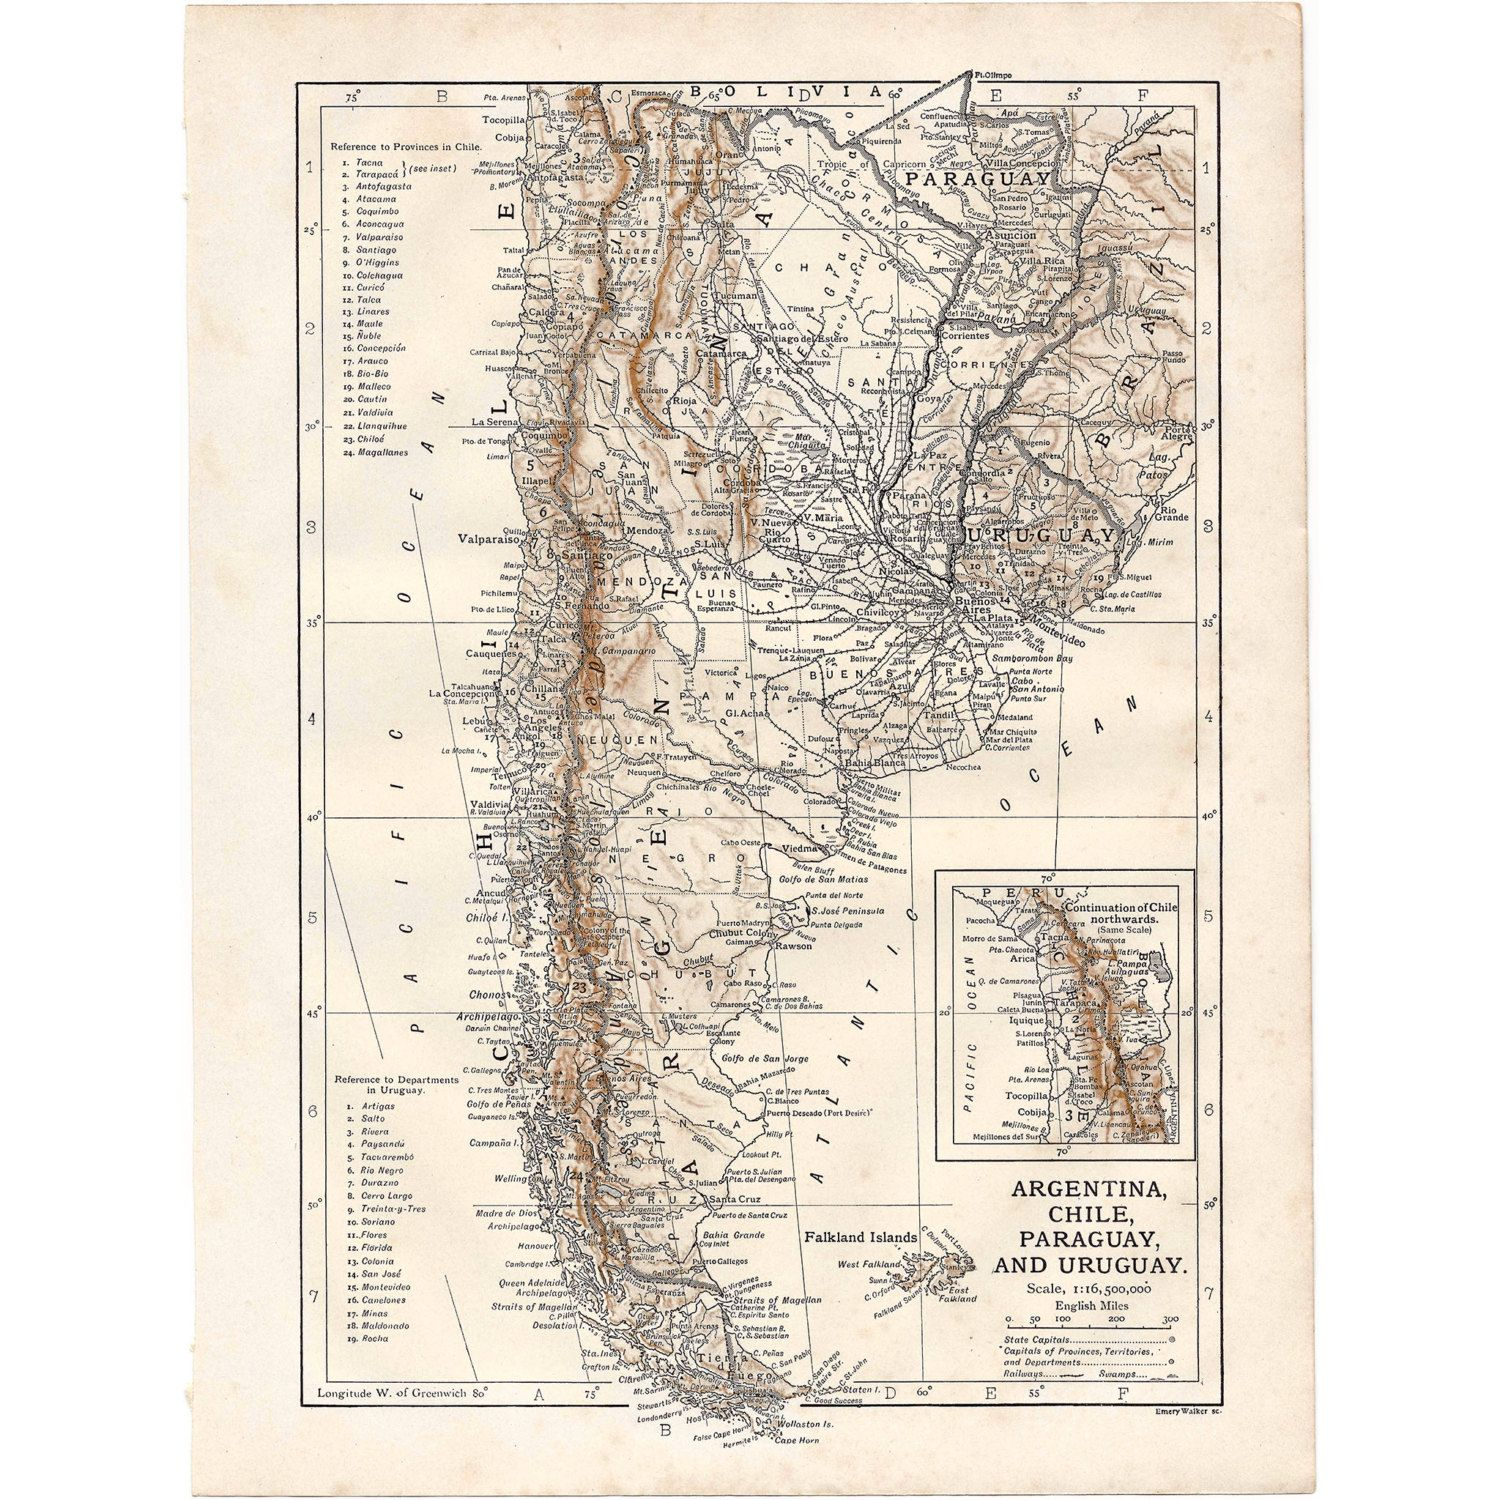 Argentina Chile Paraguay Uruguay Instant Download PreWorld - Argentina map download